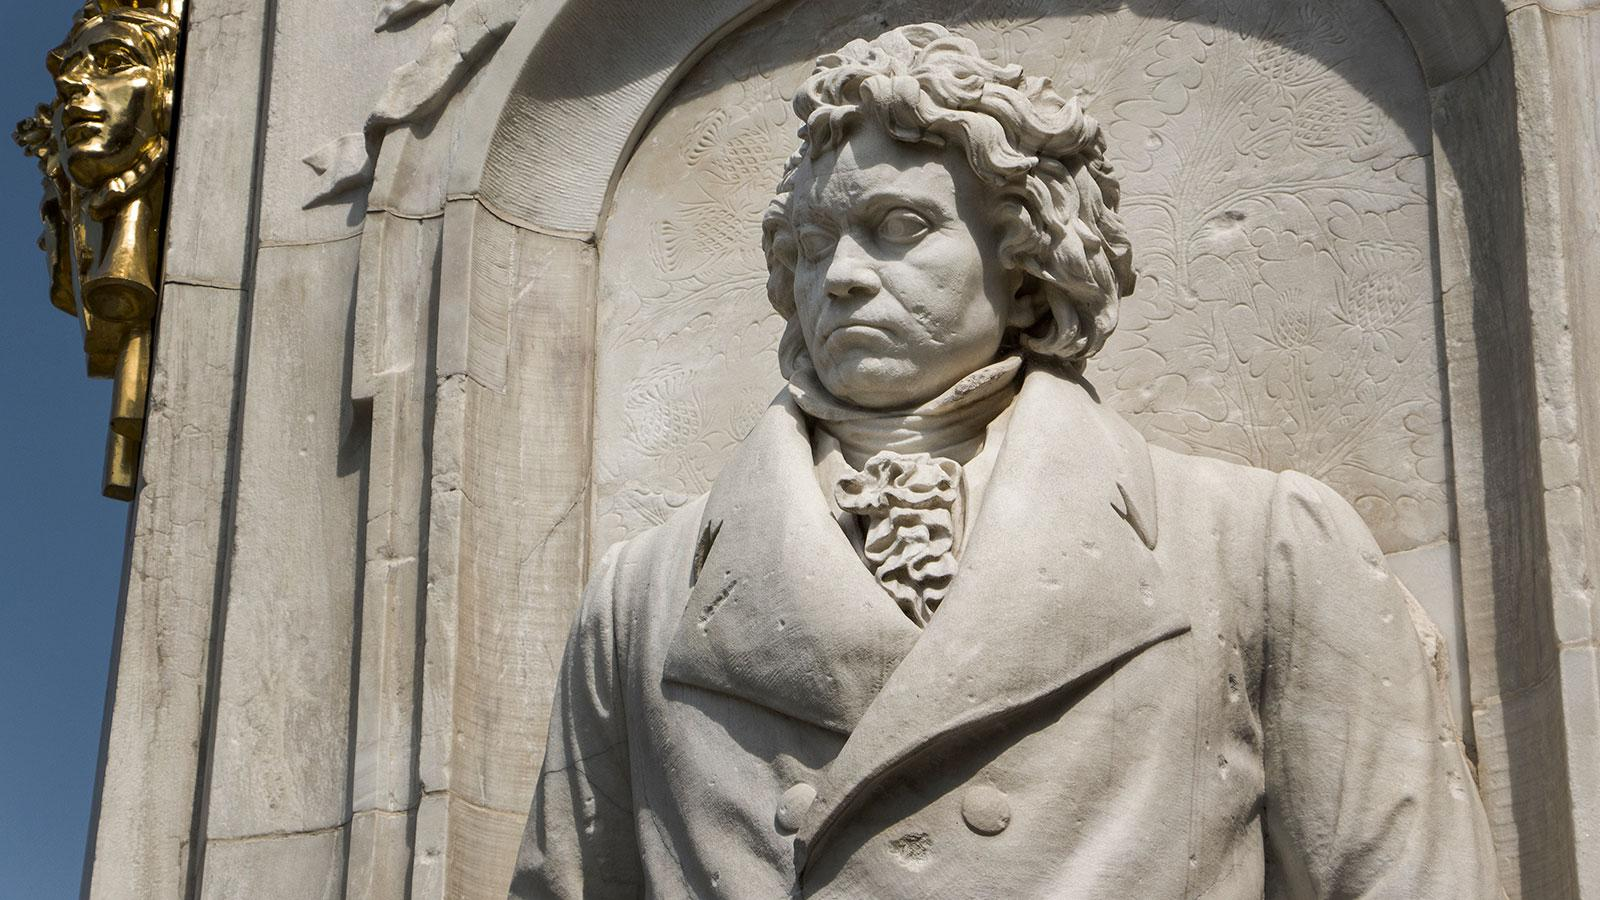 Lead in His Red: Did Wine Kill Beethoven?